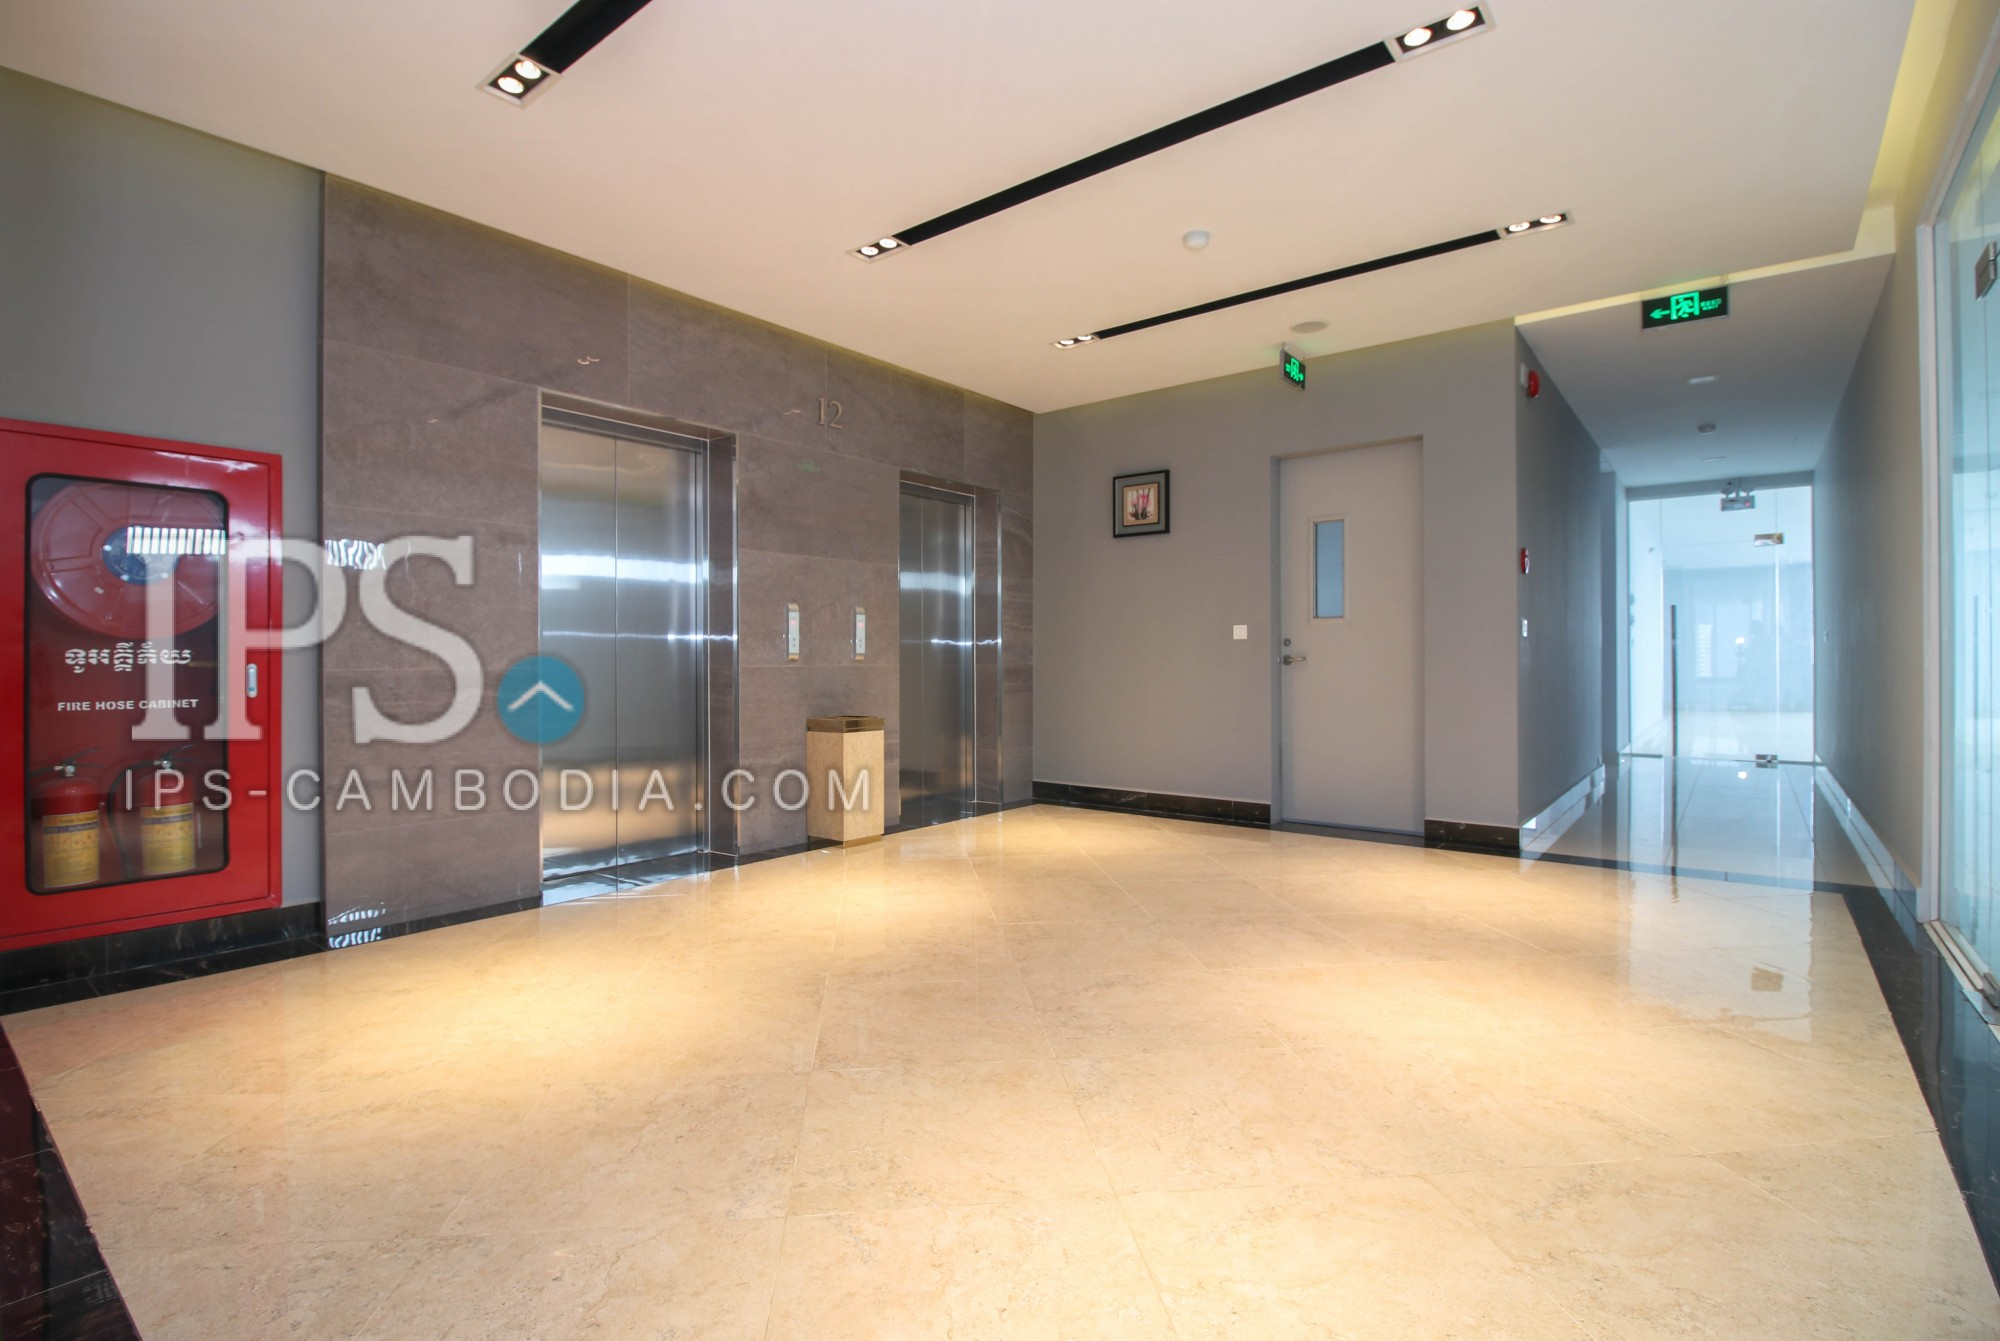 508 sqm. Commercial Office Space For Rent - Toul Tum Poung